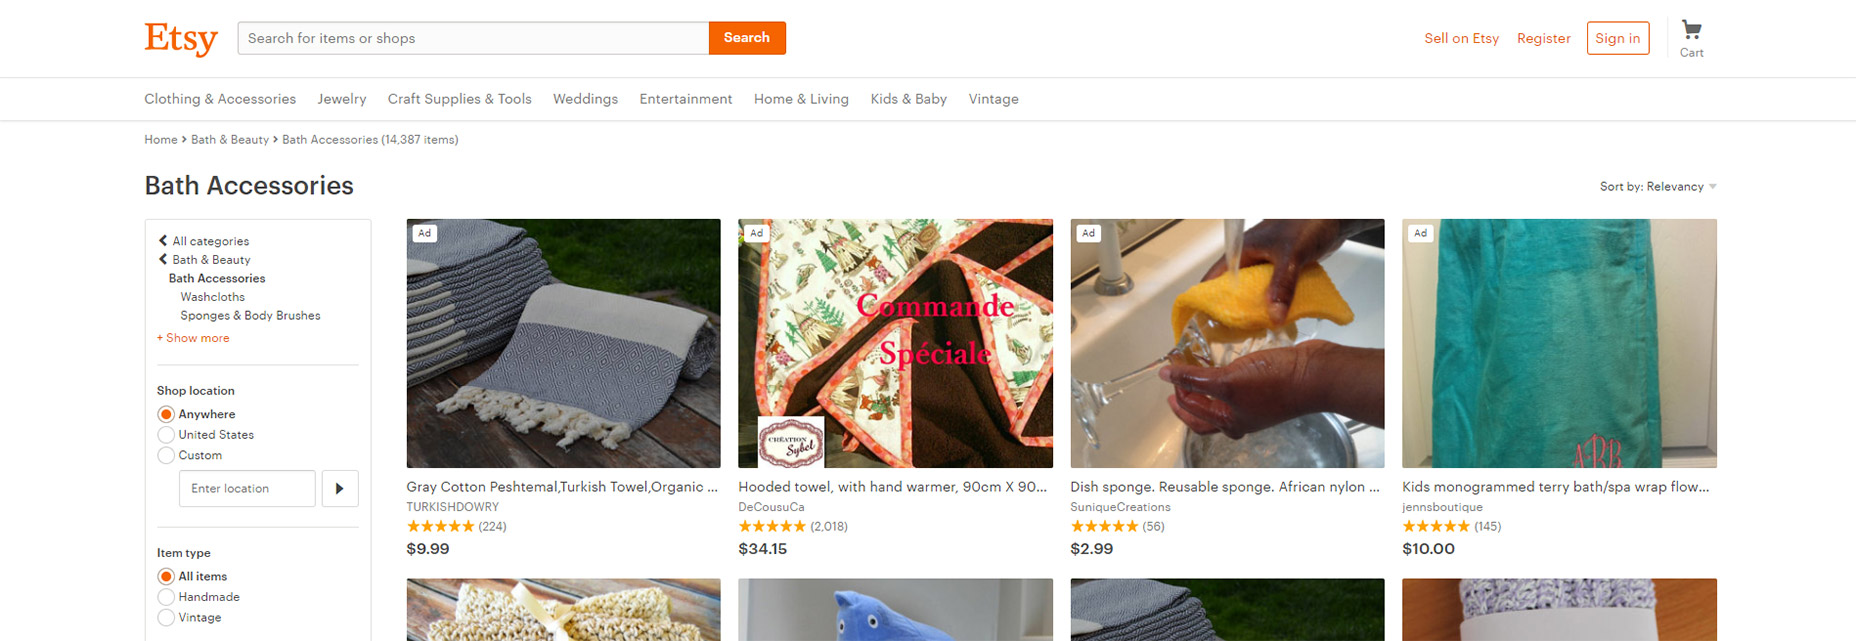 10-etsy-breadcrumbs-category-navigation